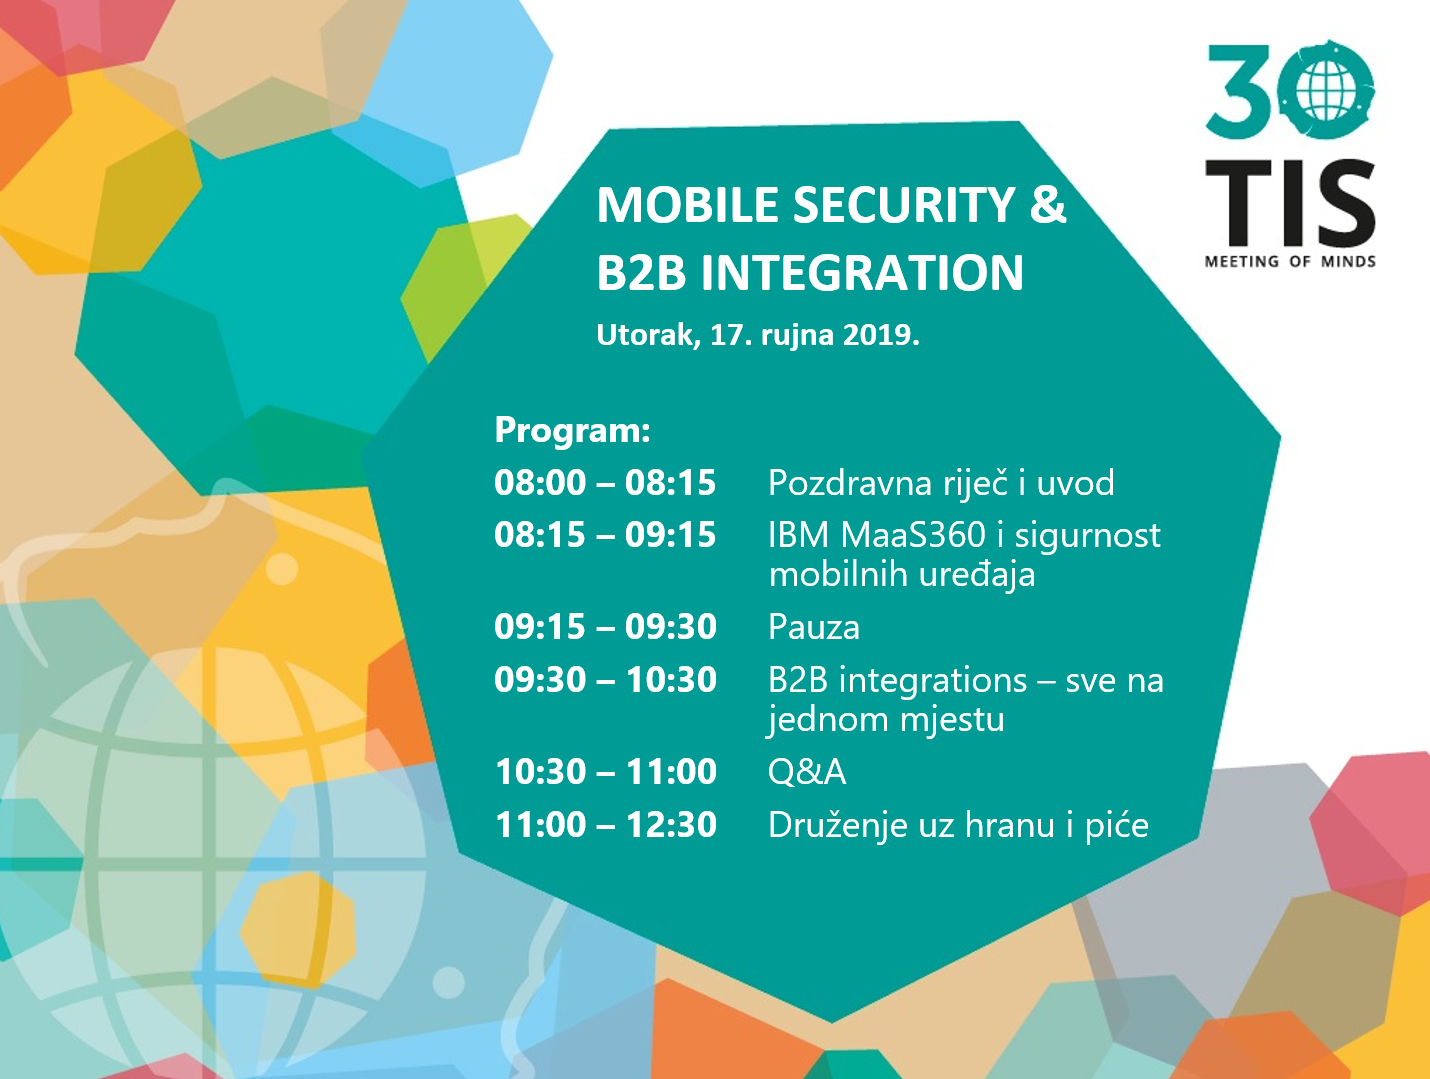 MOBILE SECURITY & B2B INTEGRATION